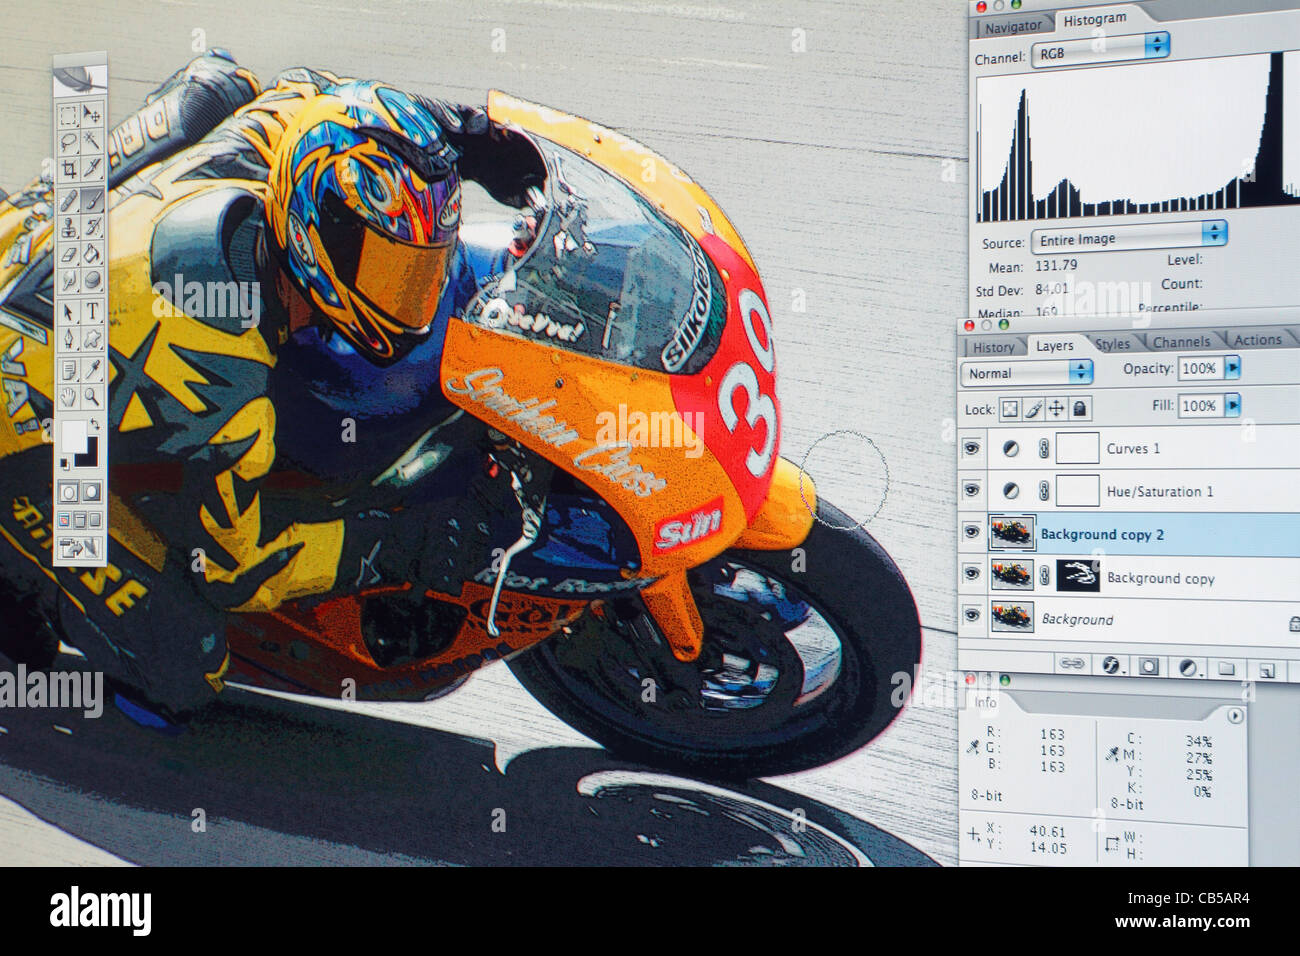 Photograph being edited in Adobe Photoshop. Original image at A185T7. Final image at A698YA - Stock Image